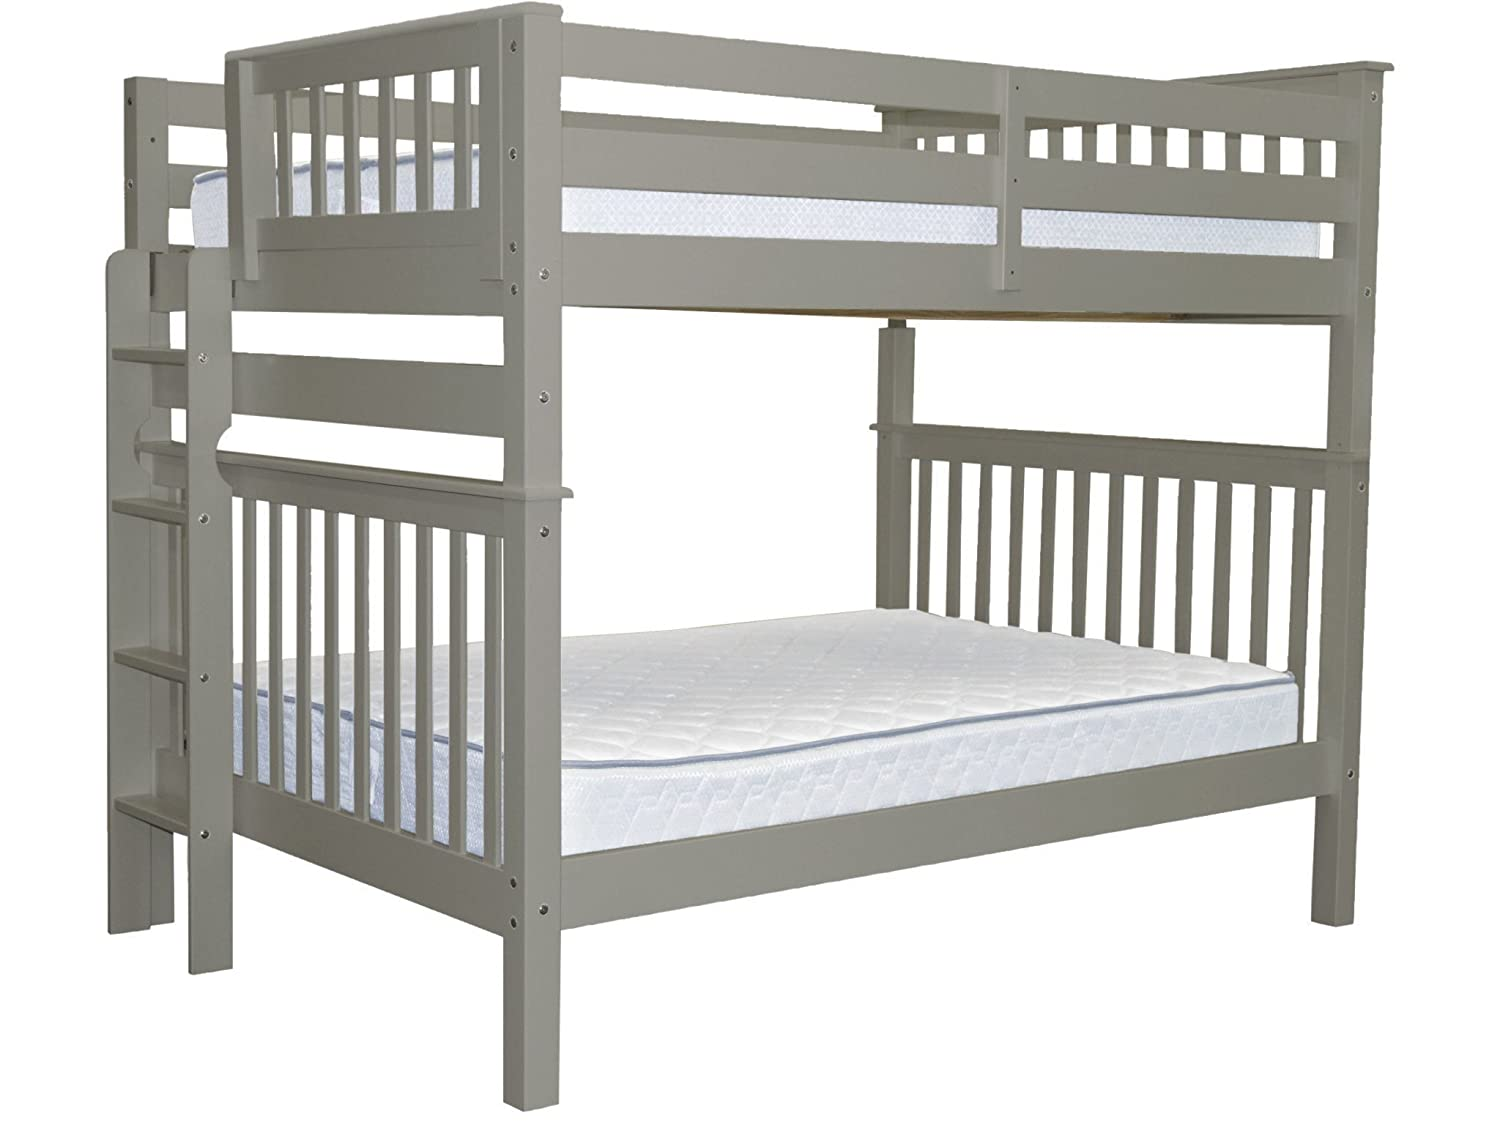 Bedz King Bunk Beds Full over Full Mission Style with End Ladder, Gray